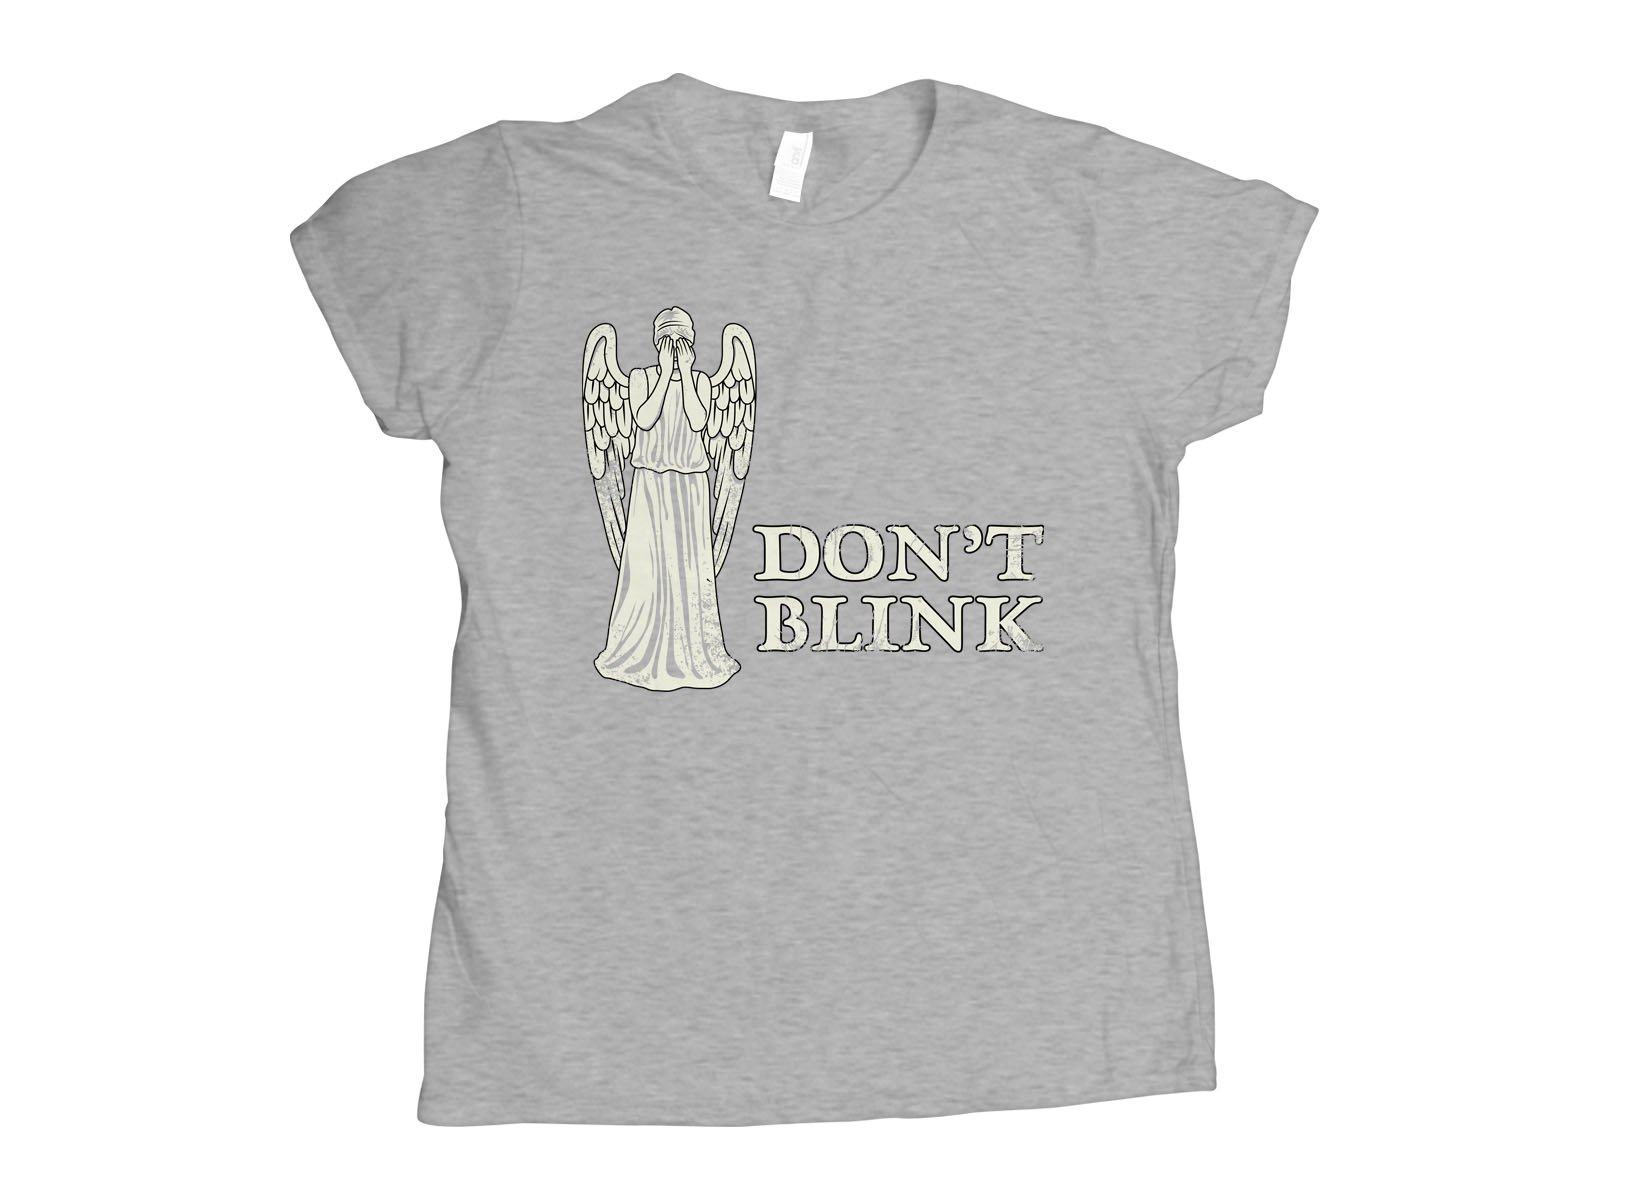 Don't Blink on Womens T-Shirt